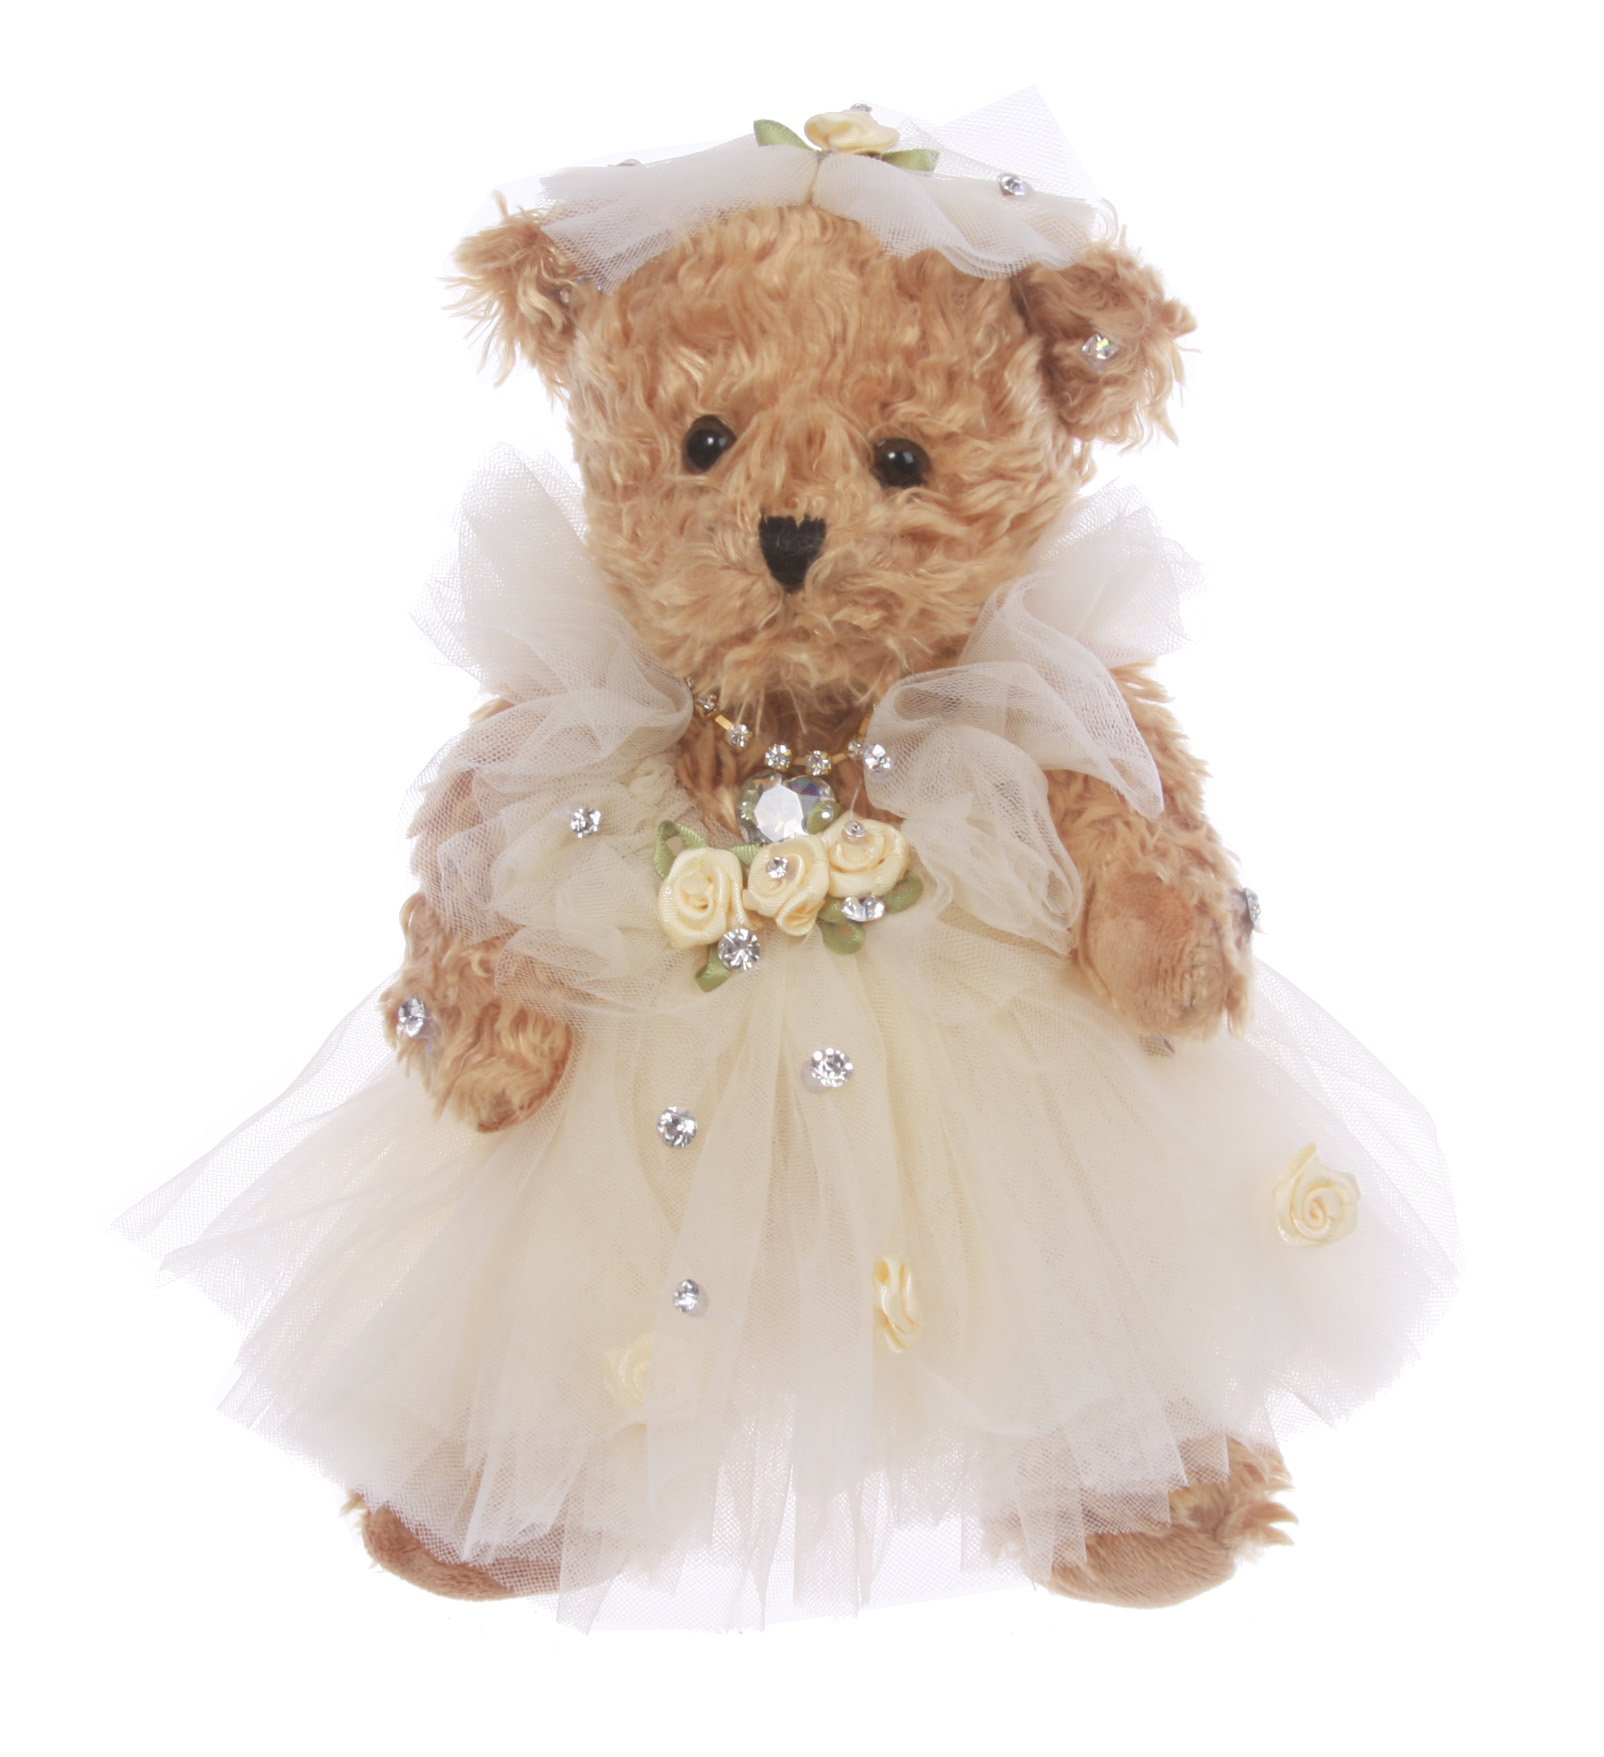 Wedding Dressed Teddy Bear Key Chain / Purse Charm Size: One Size Color: beige3